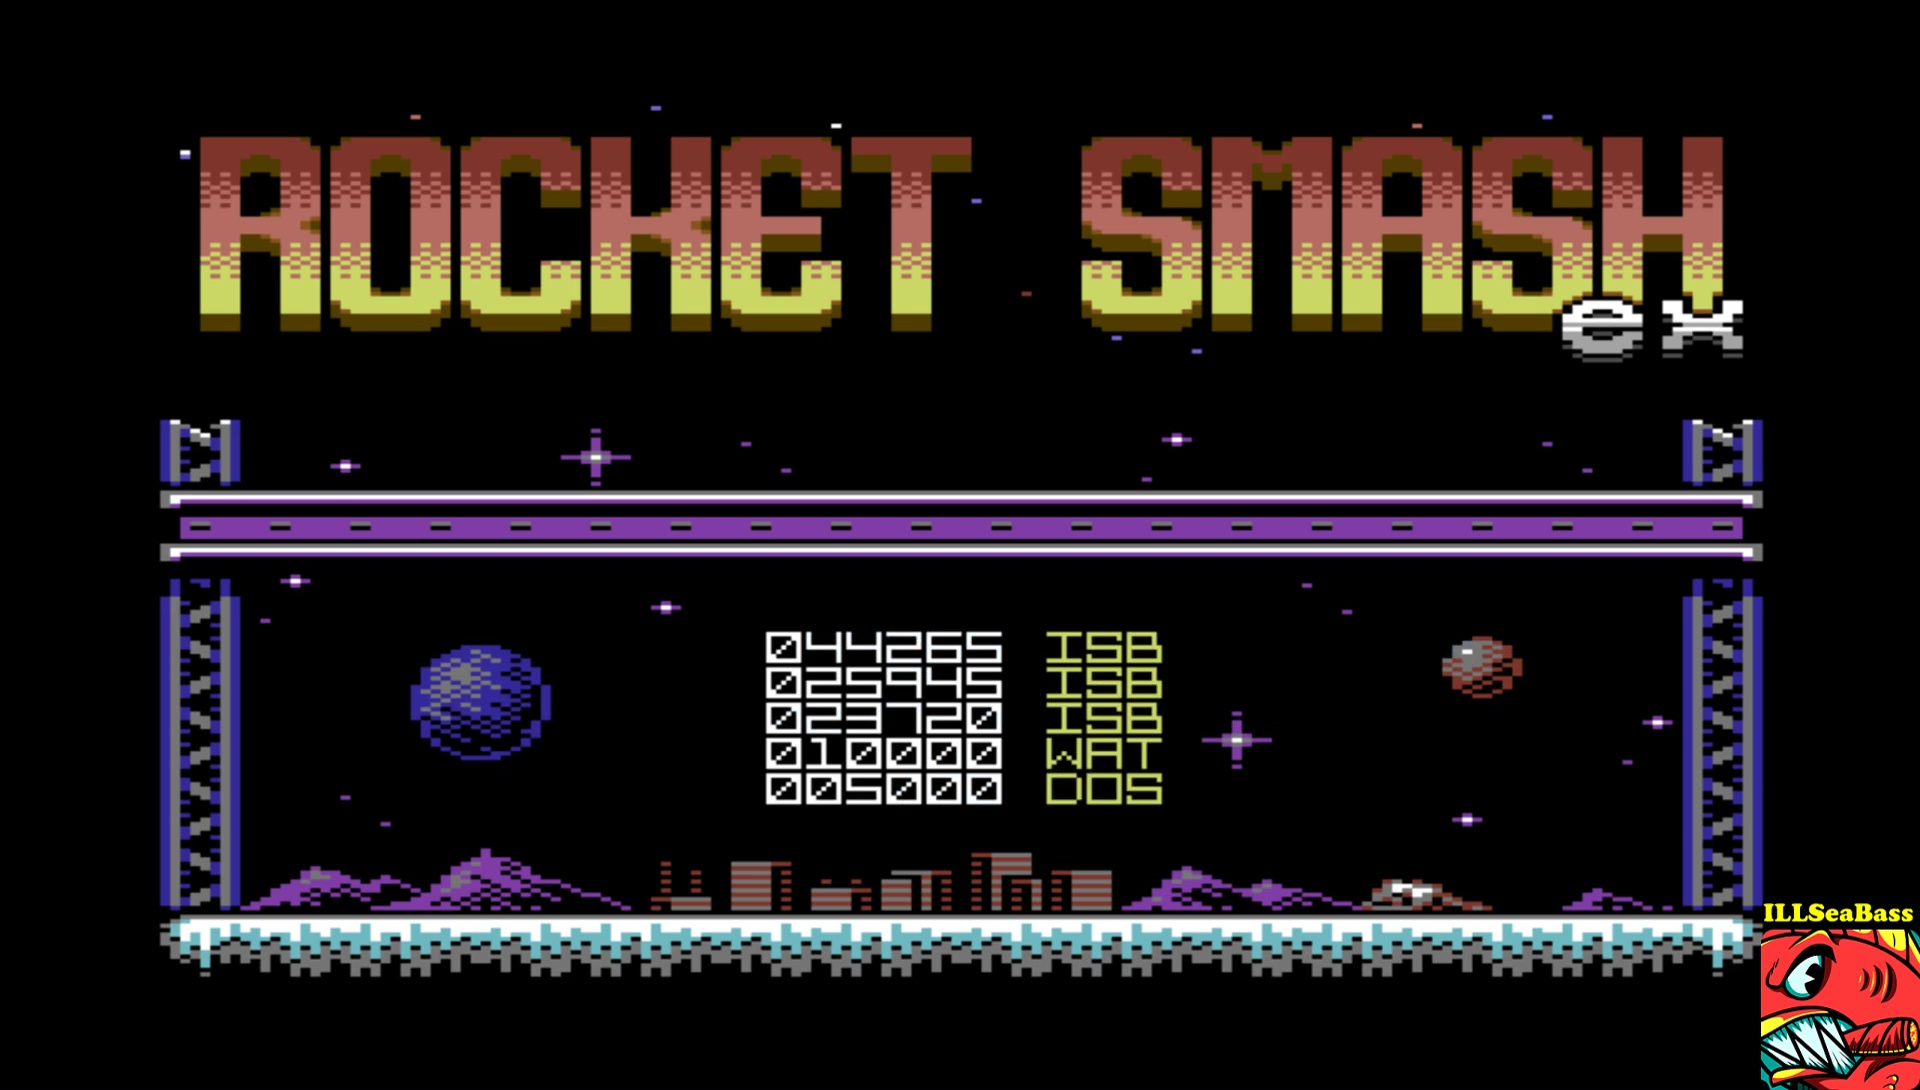 ILLSeaBass: Rocket Smash EX [Loop: Hard] (Commodore 64 Emulated) 44,265 points on 2017-04-16 00:15:30